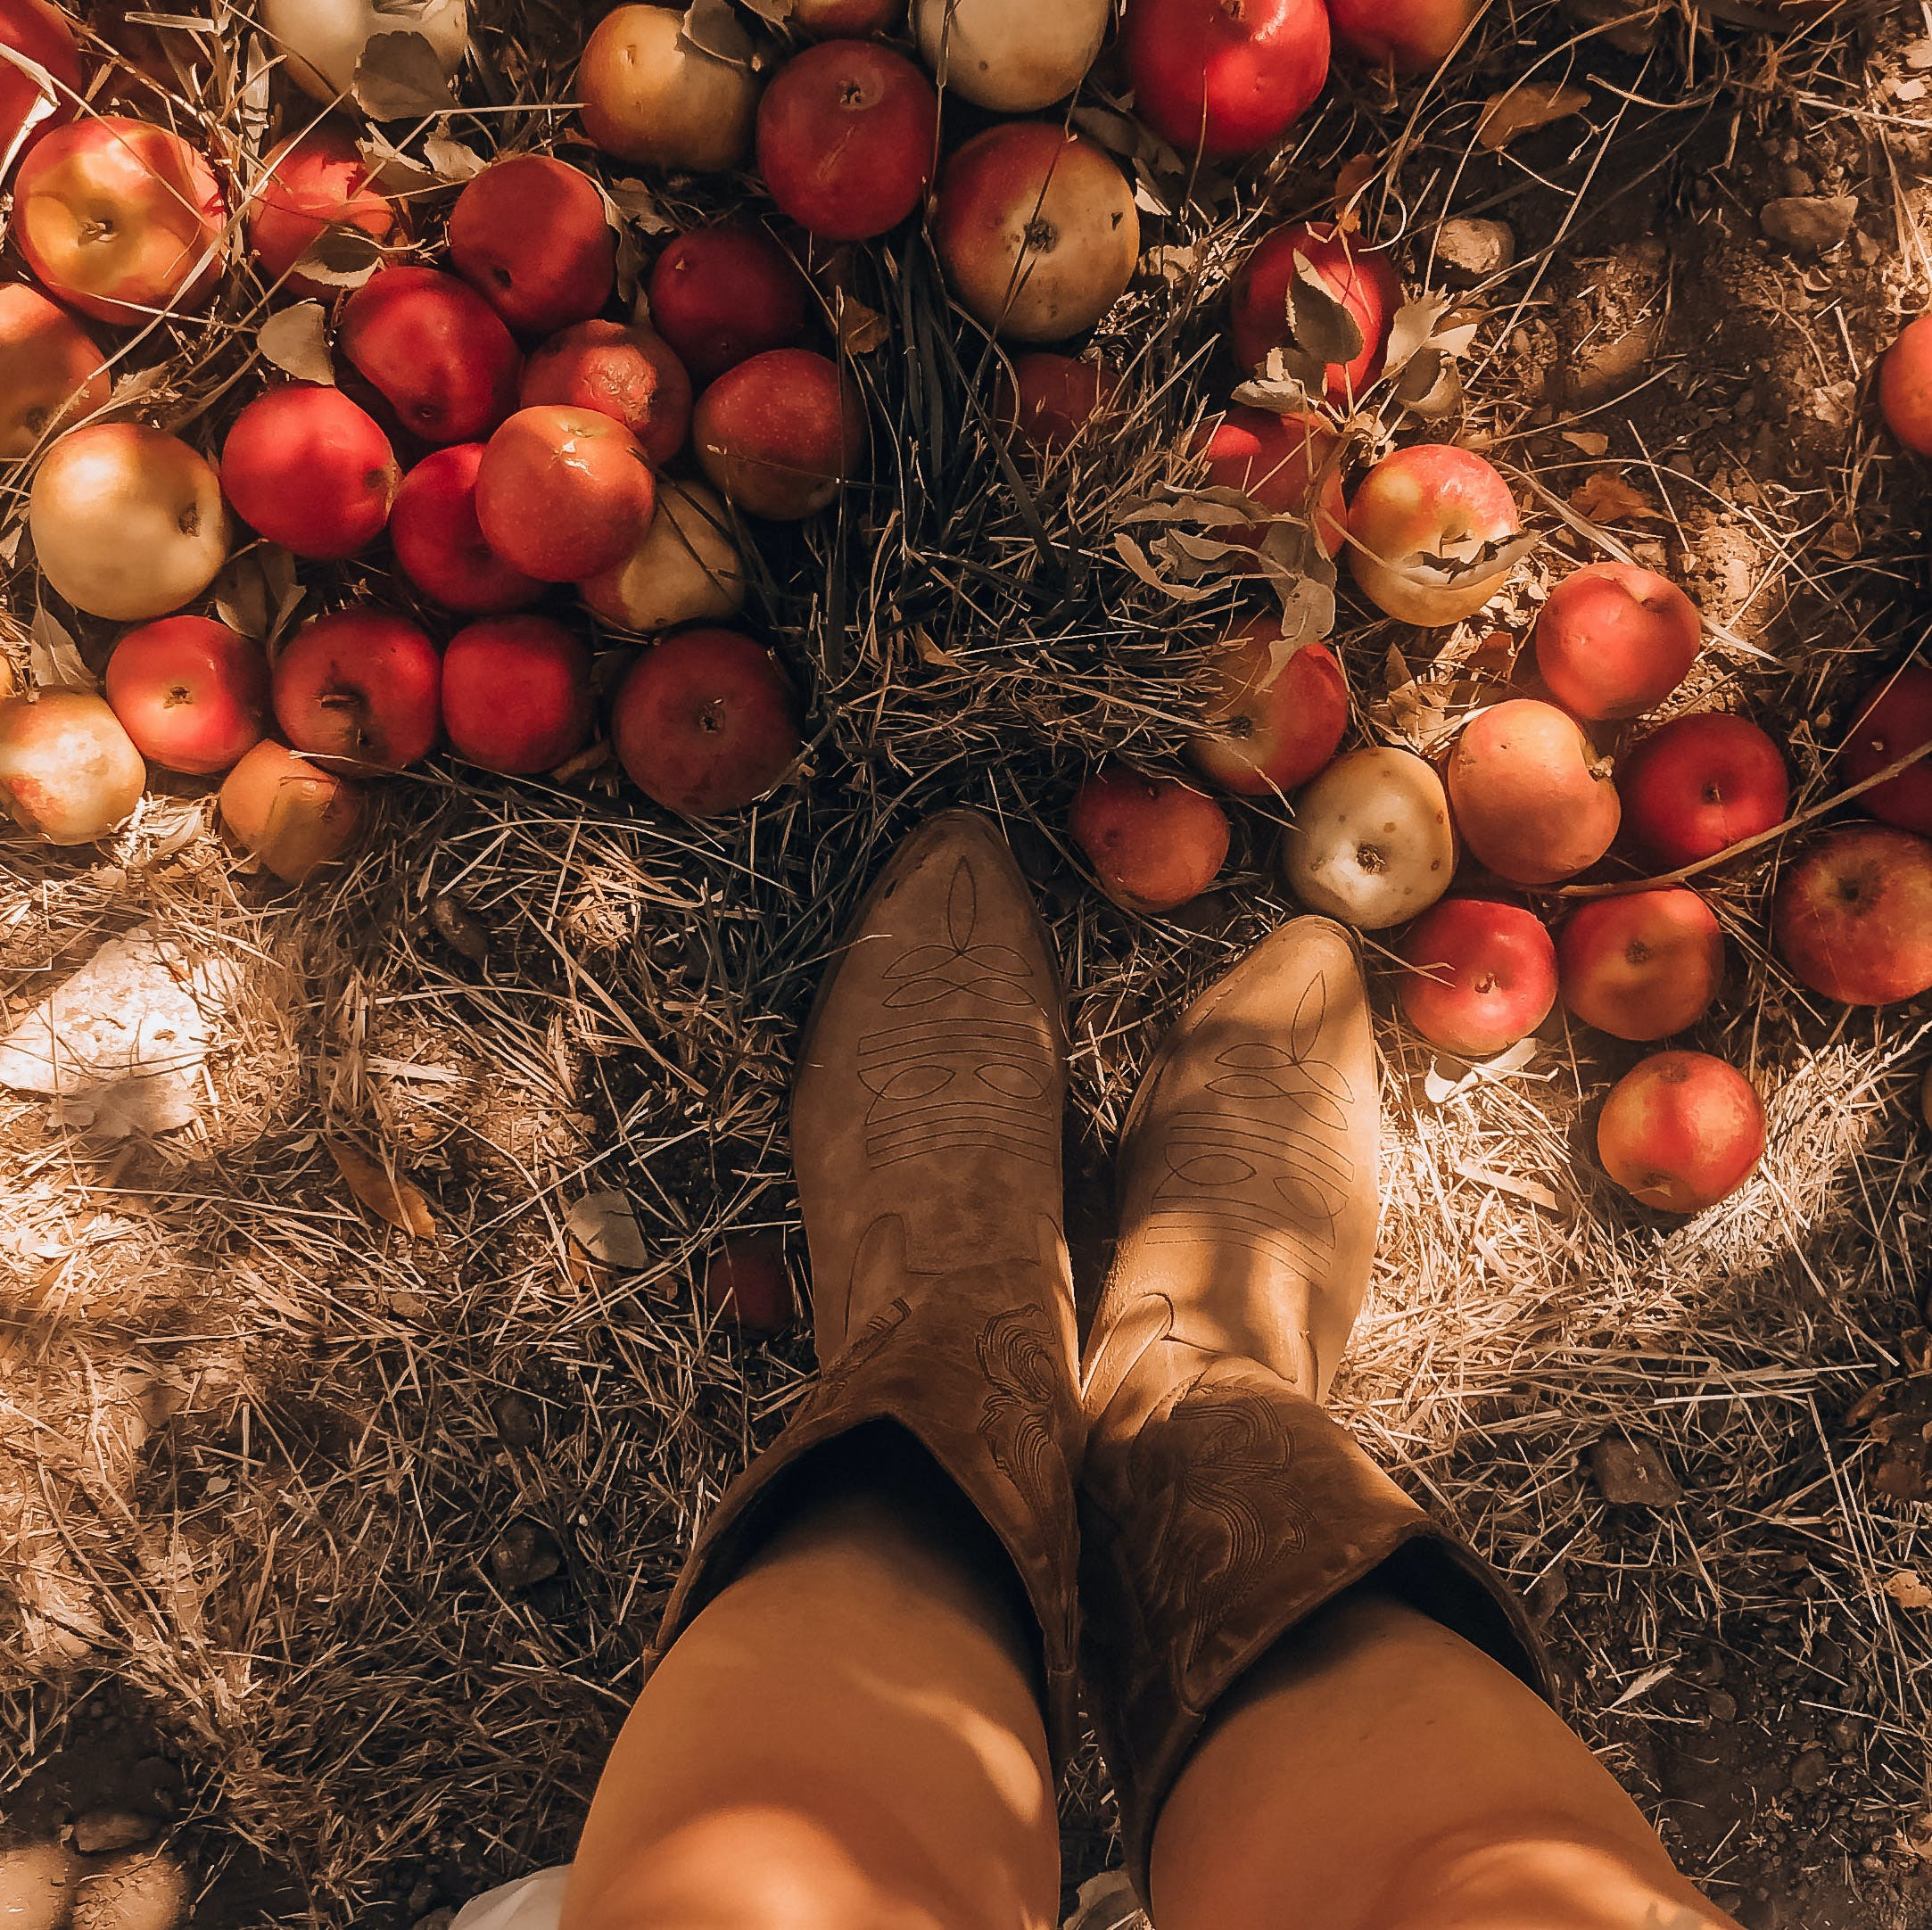 HIkers' boots amid fallen apples on the ground at Oak Glen Preserve near Yucaipa